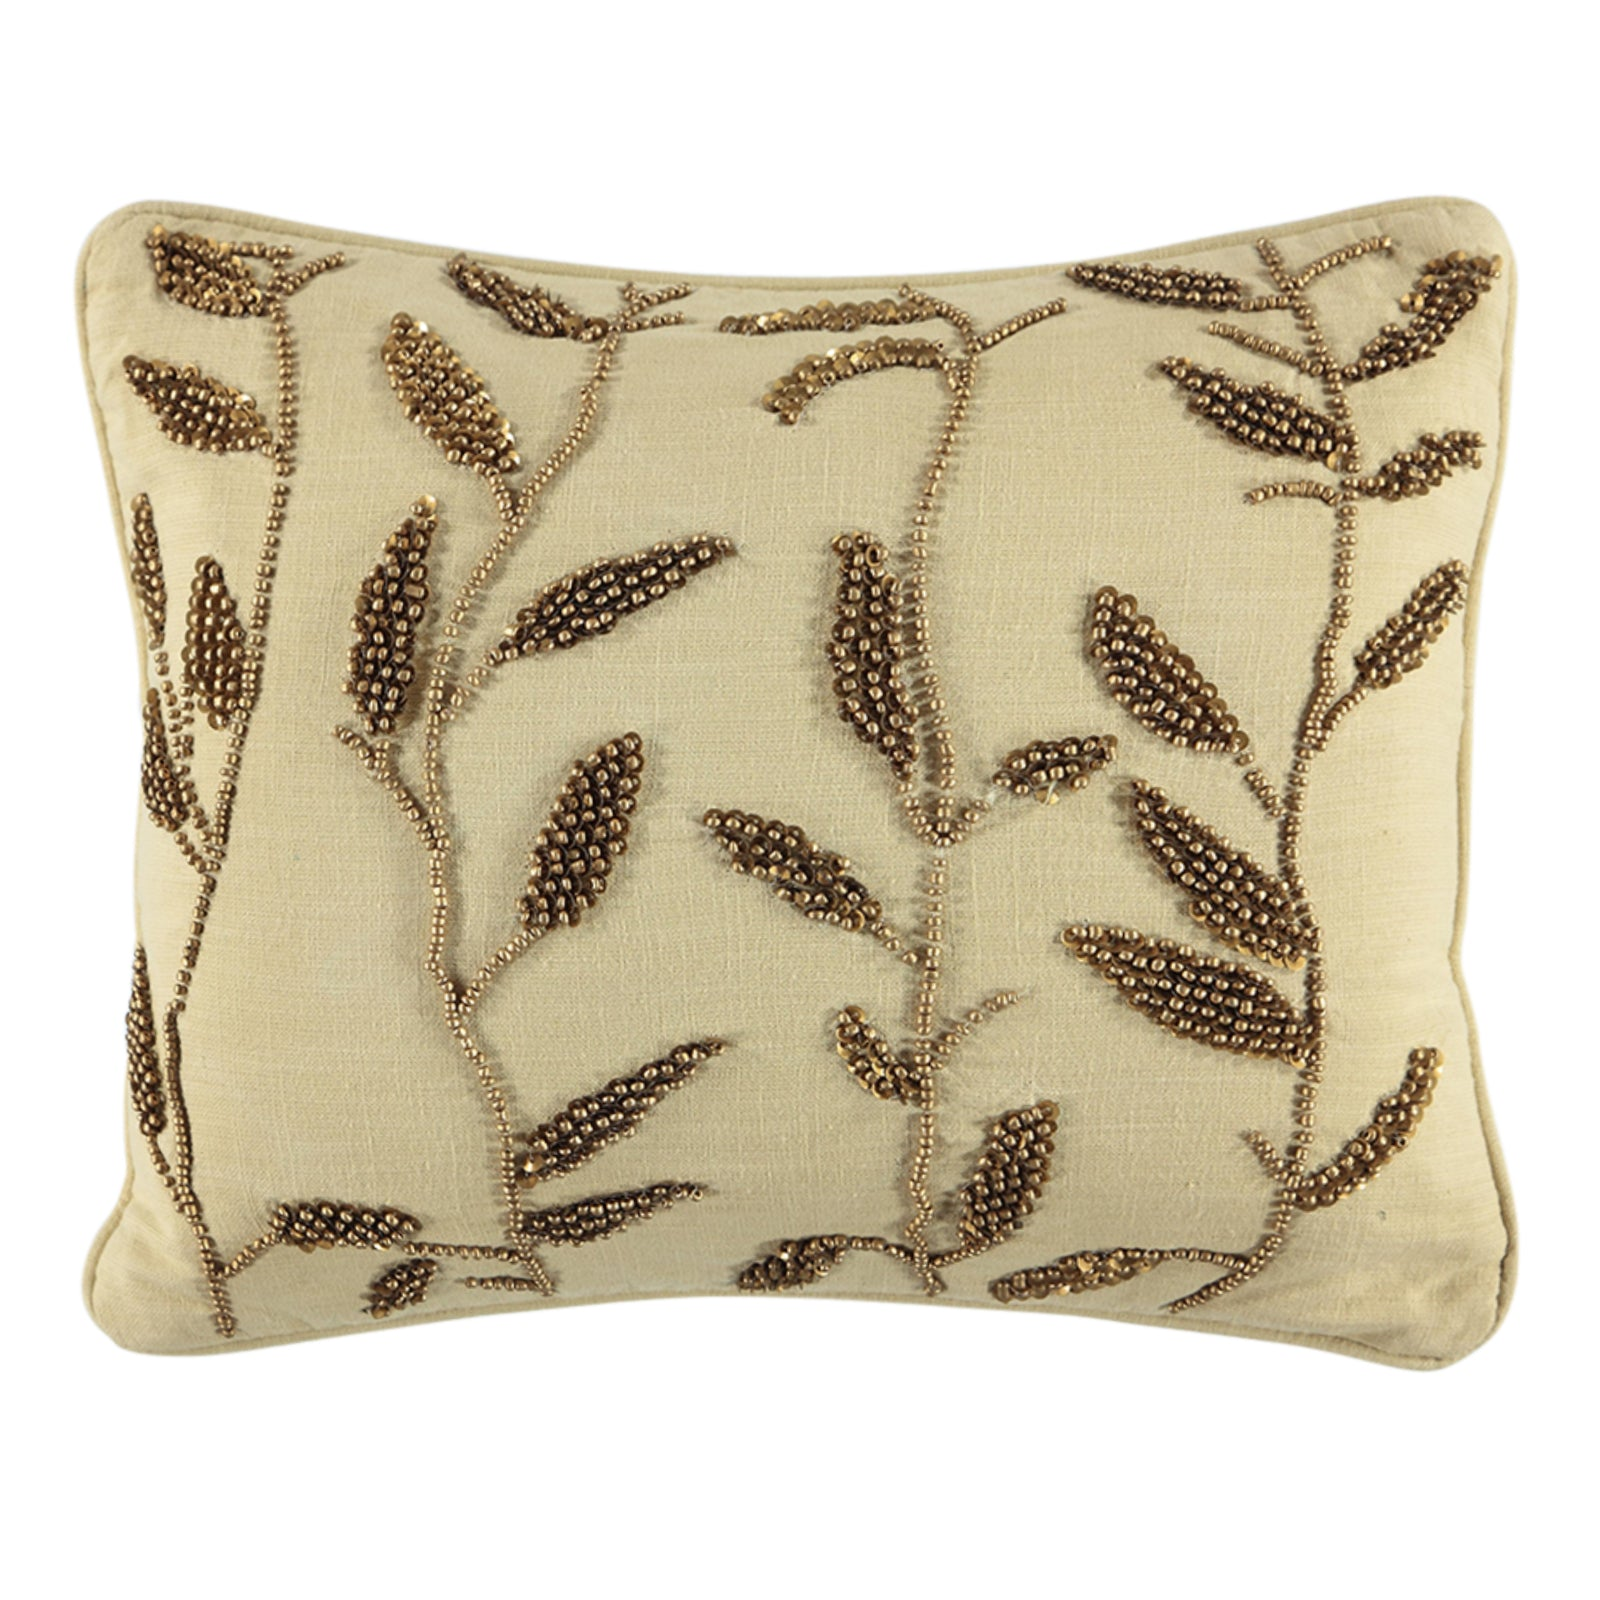 "Gold Leaves Beads Embroidery Decorative Pillow, 14"" X 18"" Mod Lifestyles"